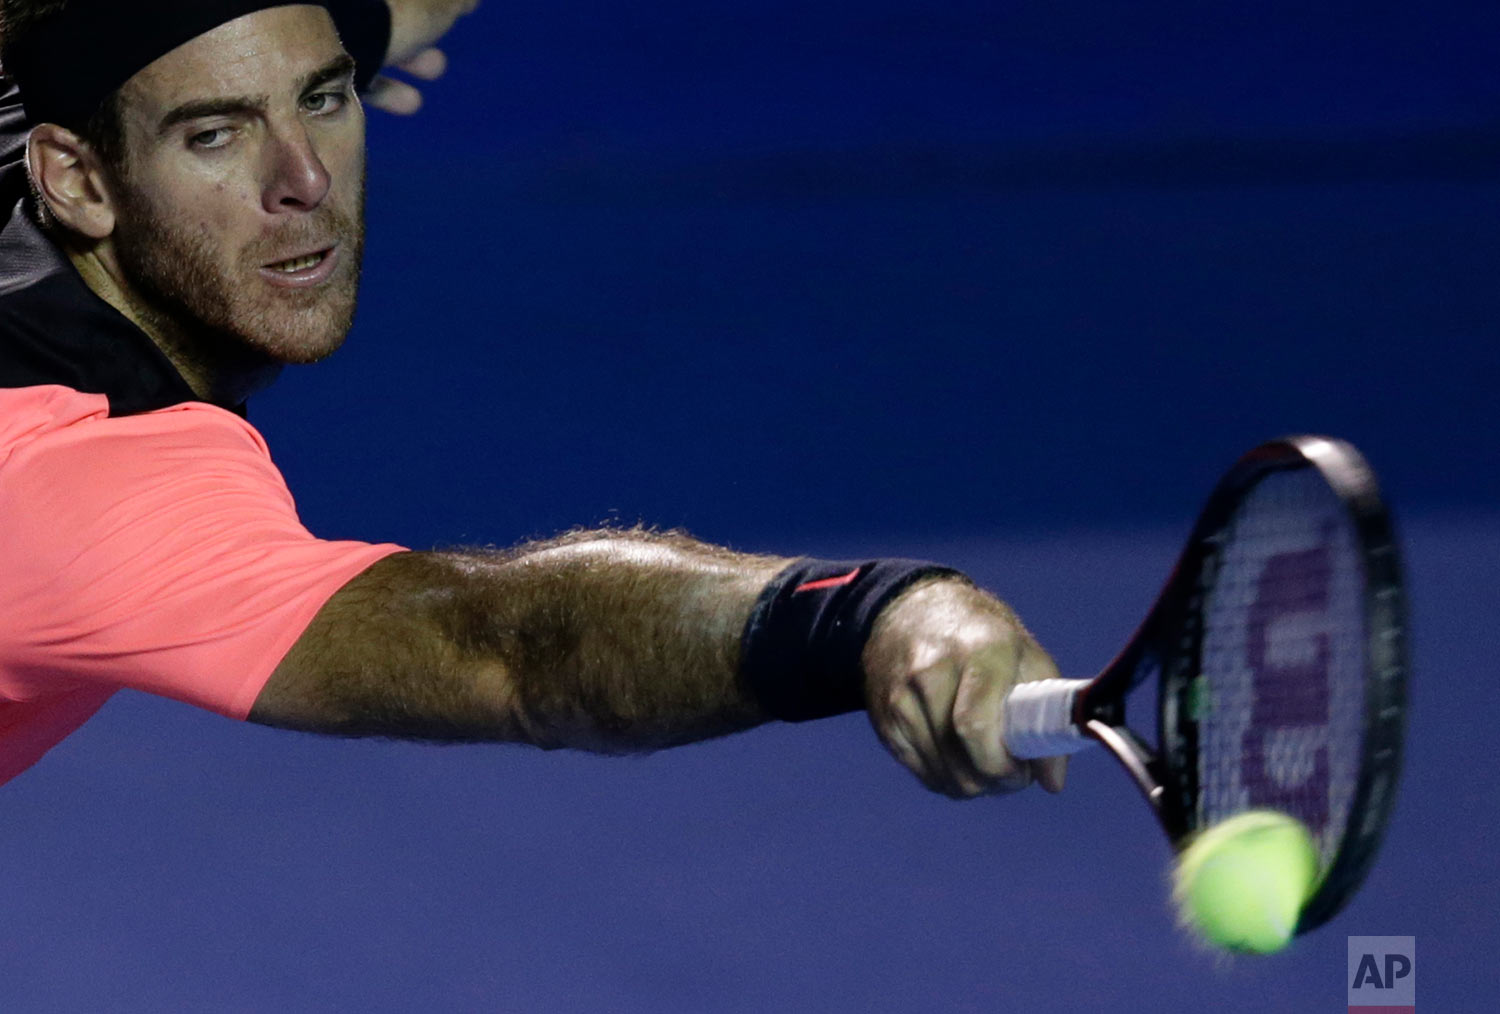 Argentina's Juan Martin del Potro returns a ball from South Africa's Kevin Anderson in the men's final at the Mexican Tennis Open in Acapulco, Mexico, March 3, 2018.(AP Photo/Rebecca Blackwell)